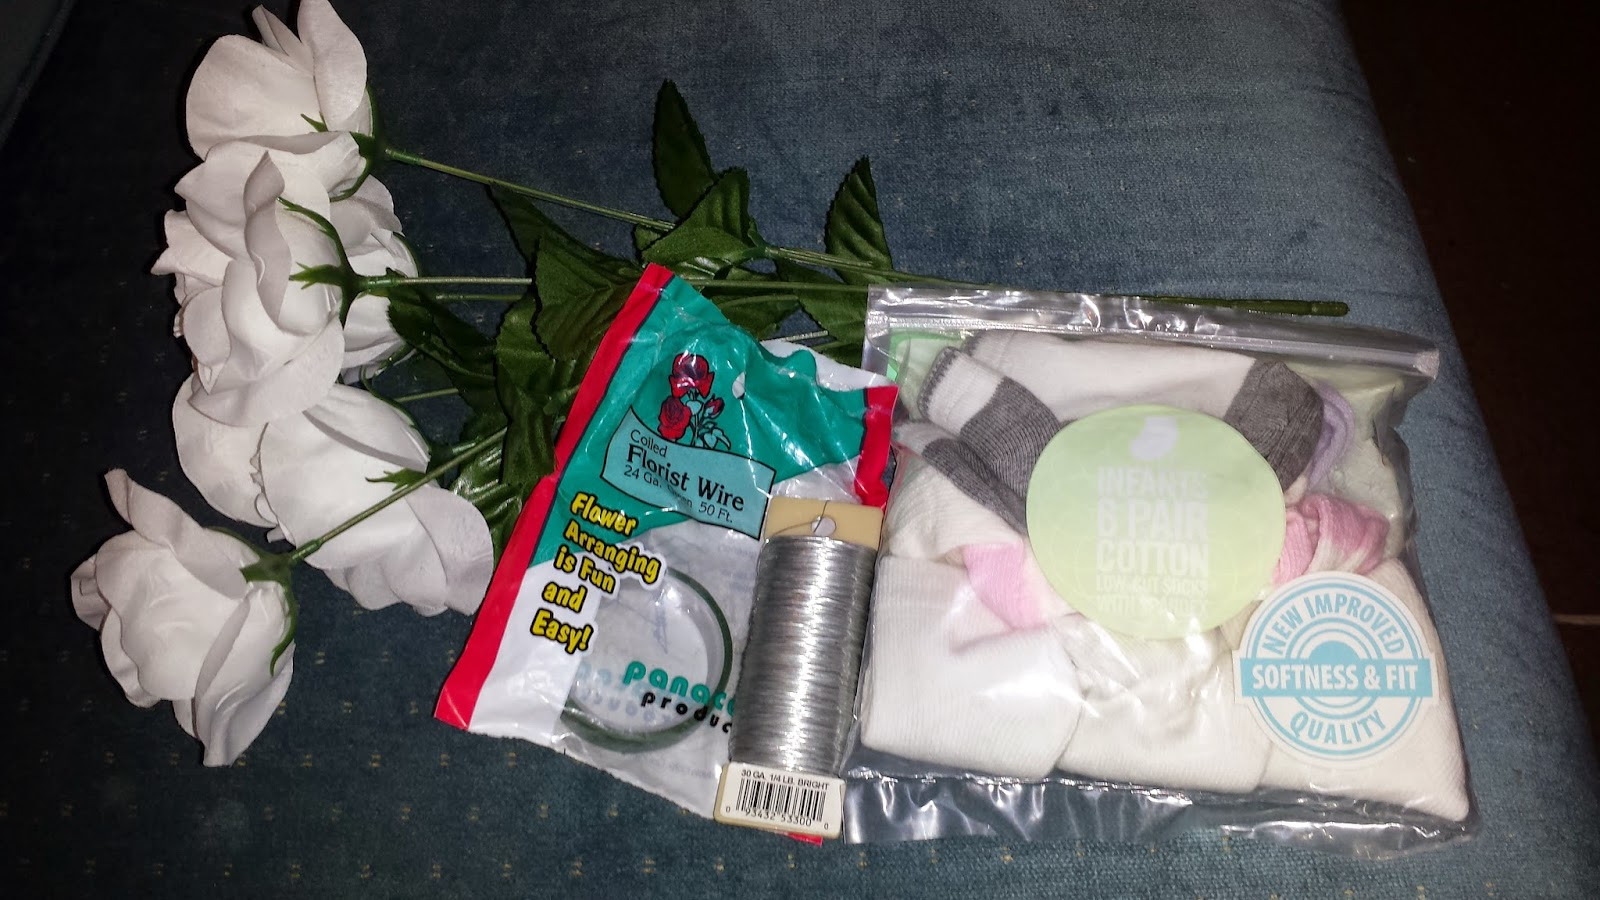 Supplies: silk flowers, floral wire and tape, baby socks